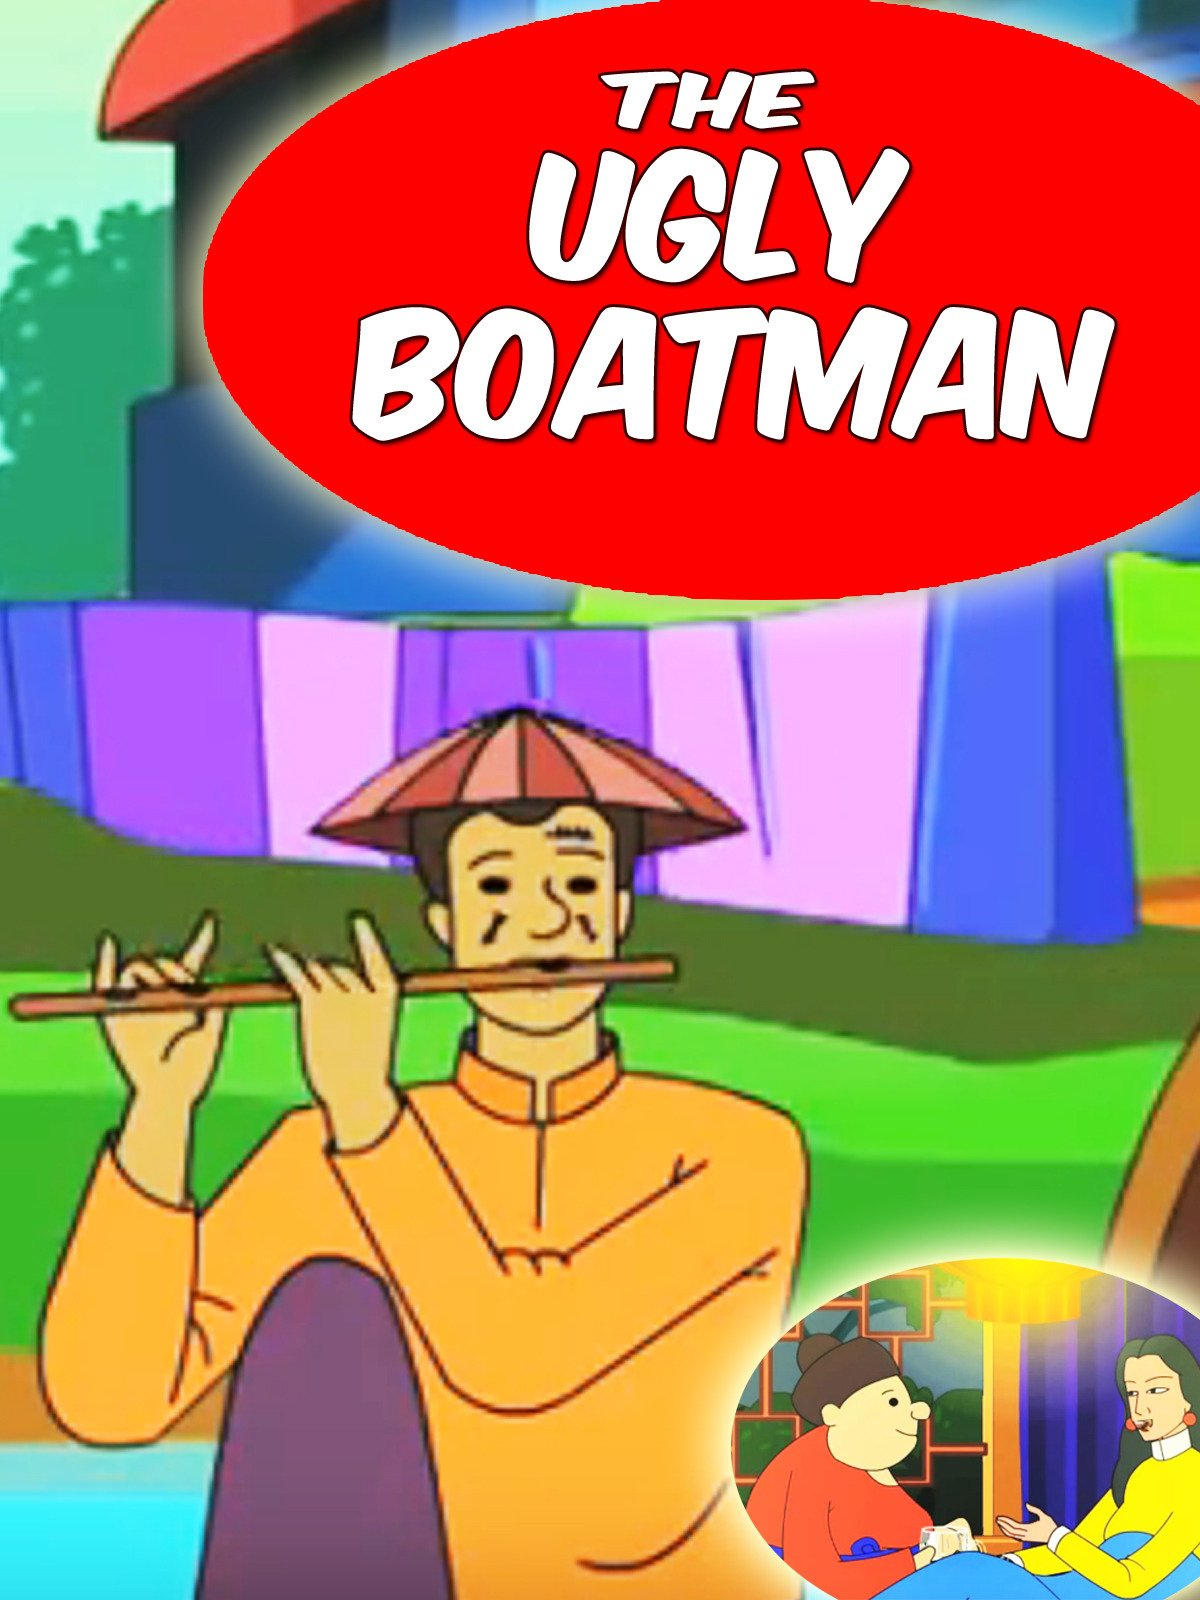 The Ugly Boatman